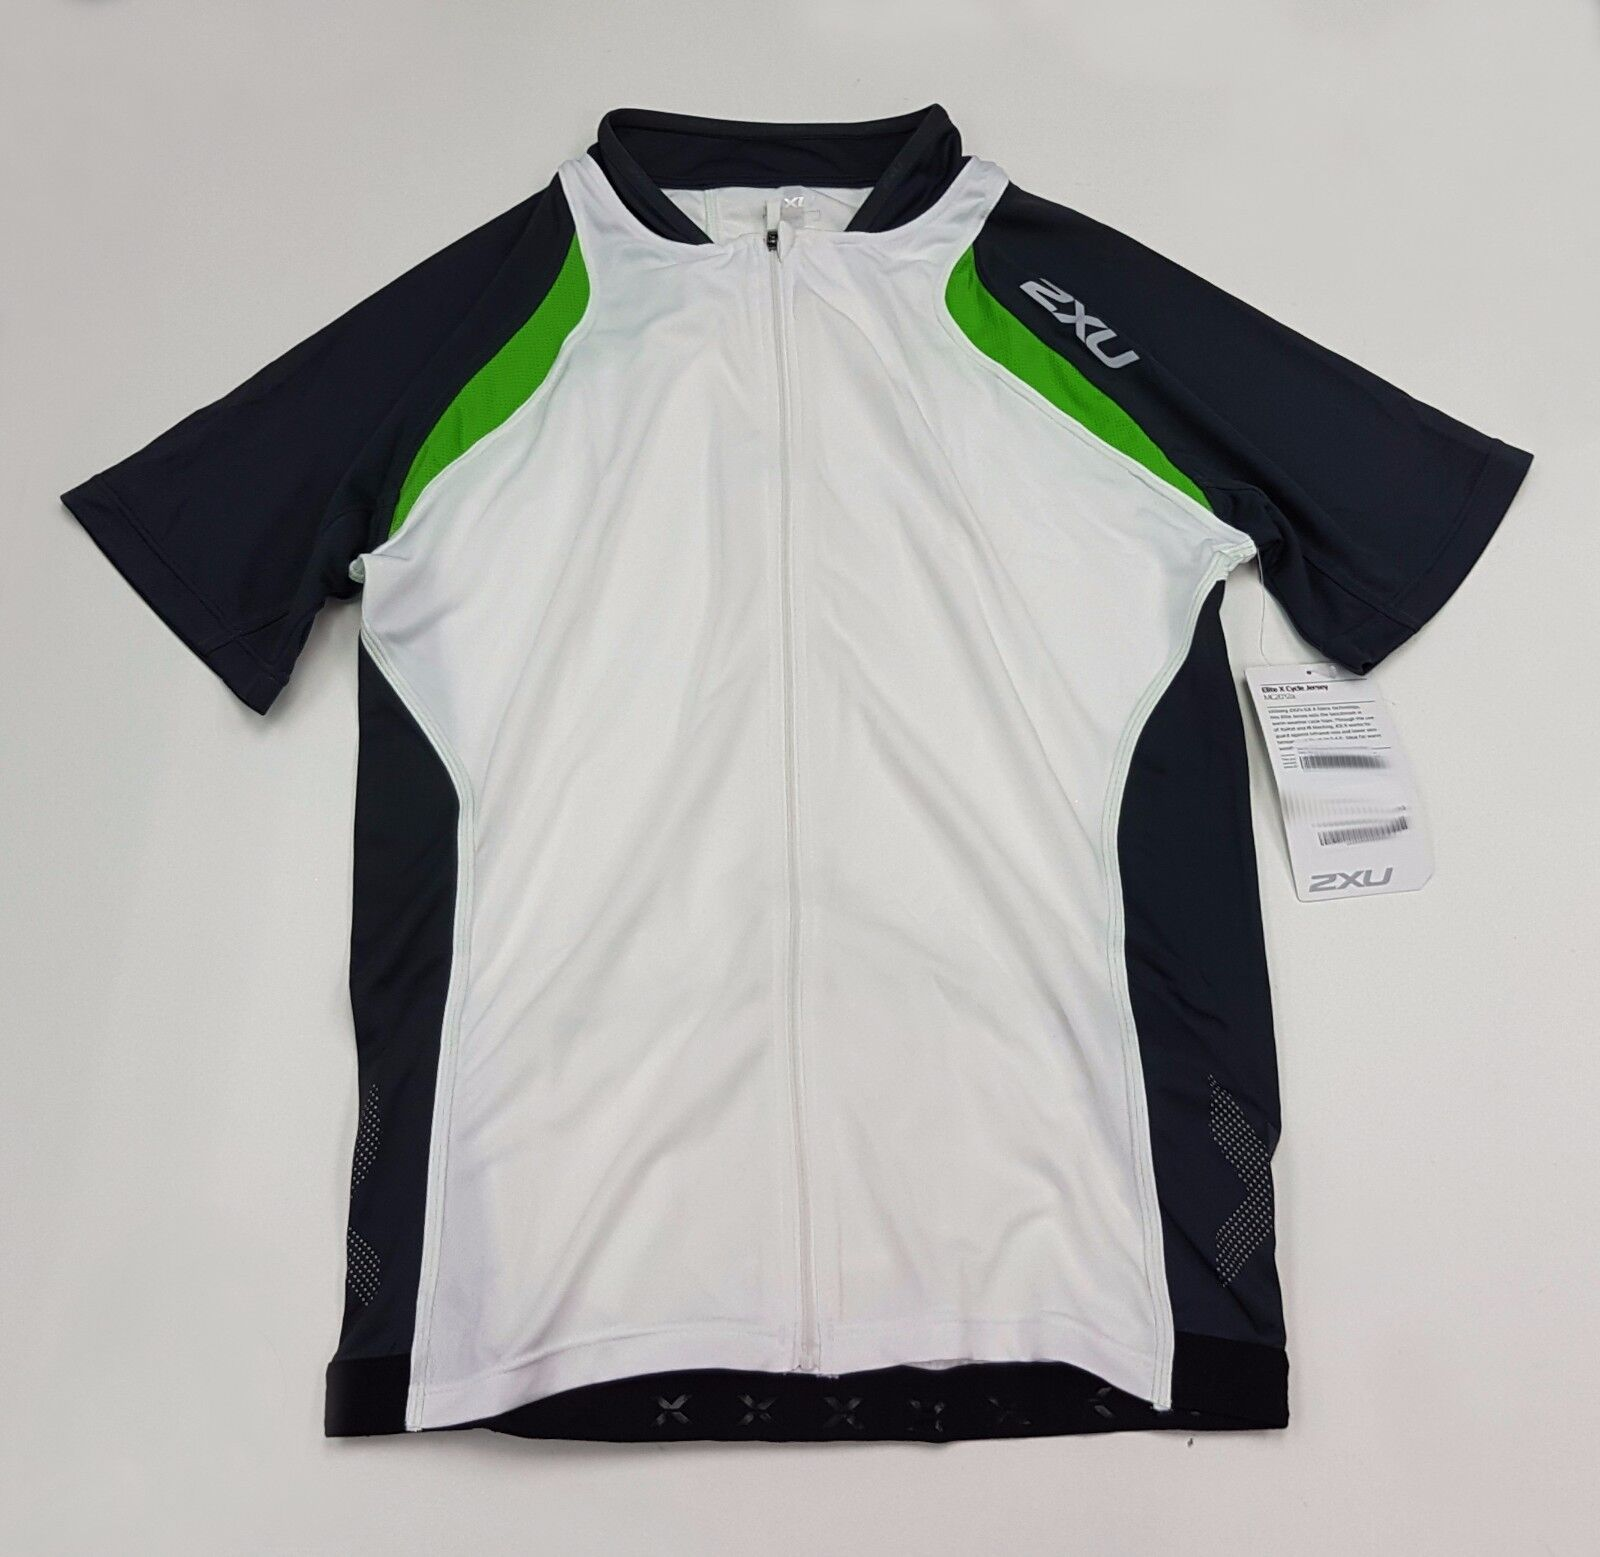 2XU Elite Cycle Men's Cycling Jersey MC2012a White Green  Small  limited edition